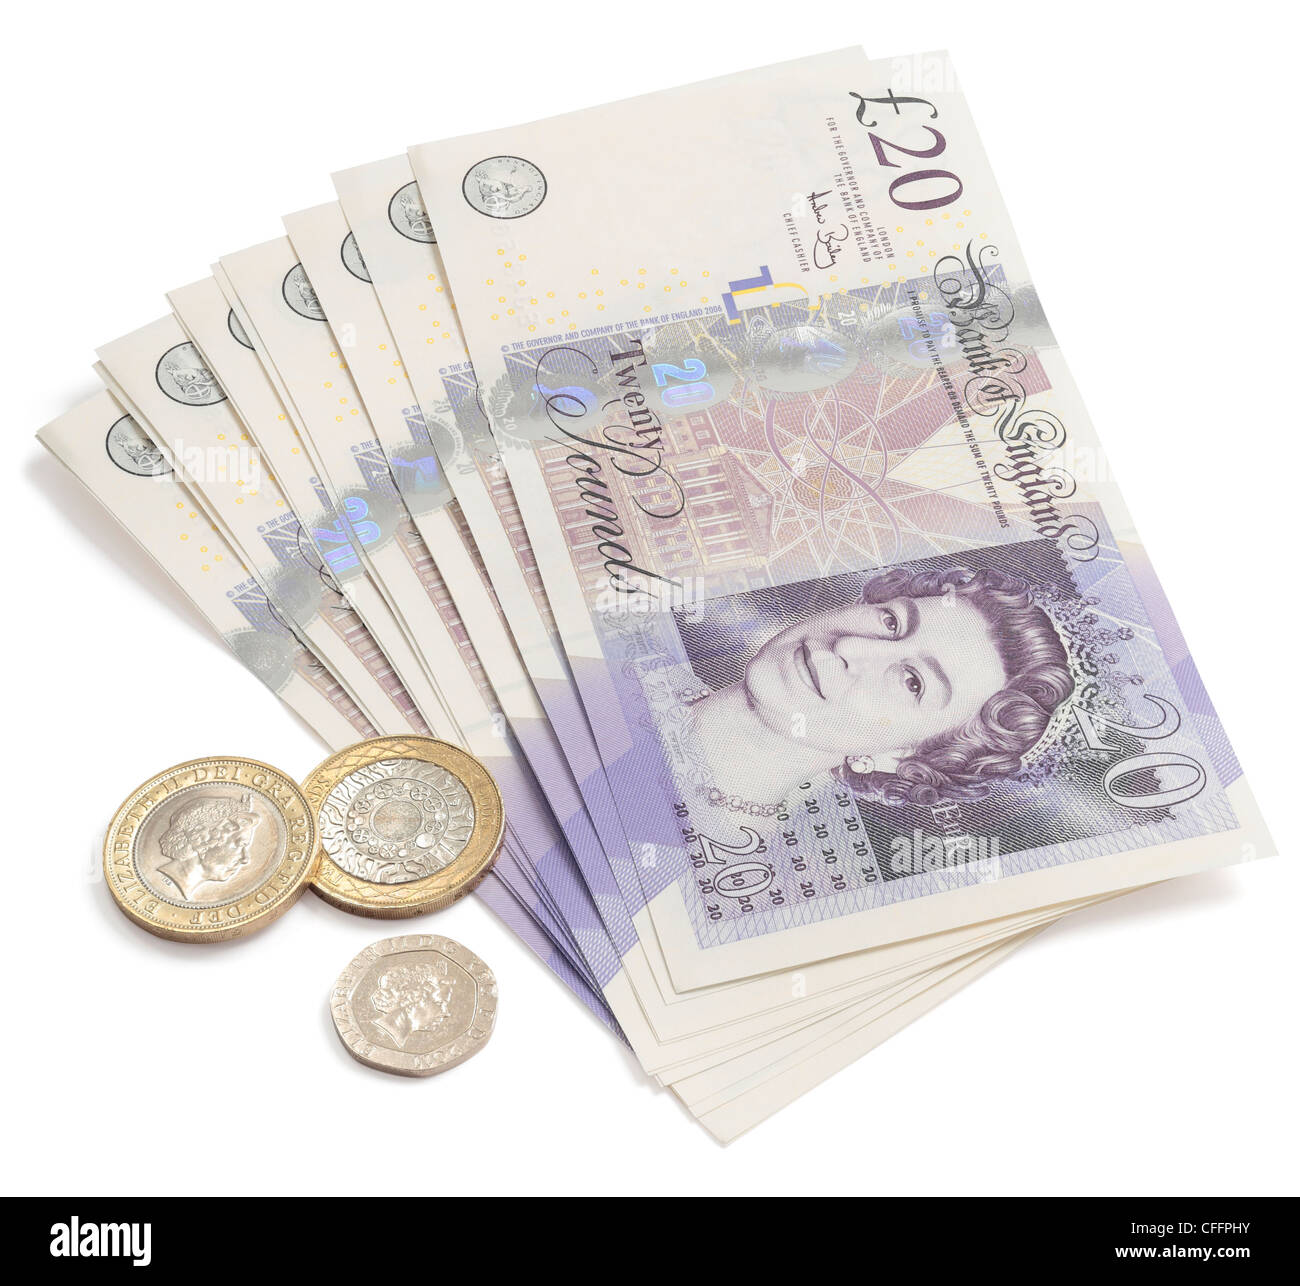 Fan of twenty pound notes and coins. - Stock Image